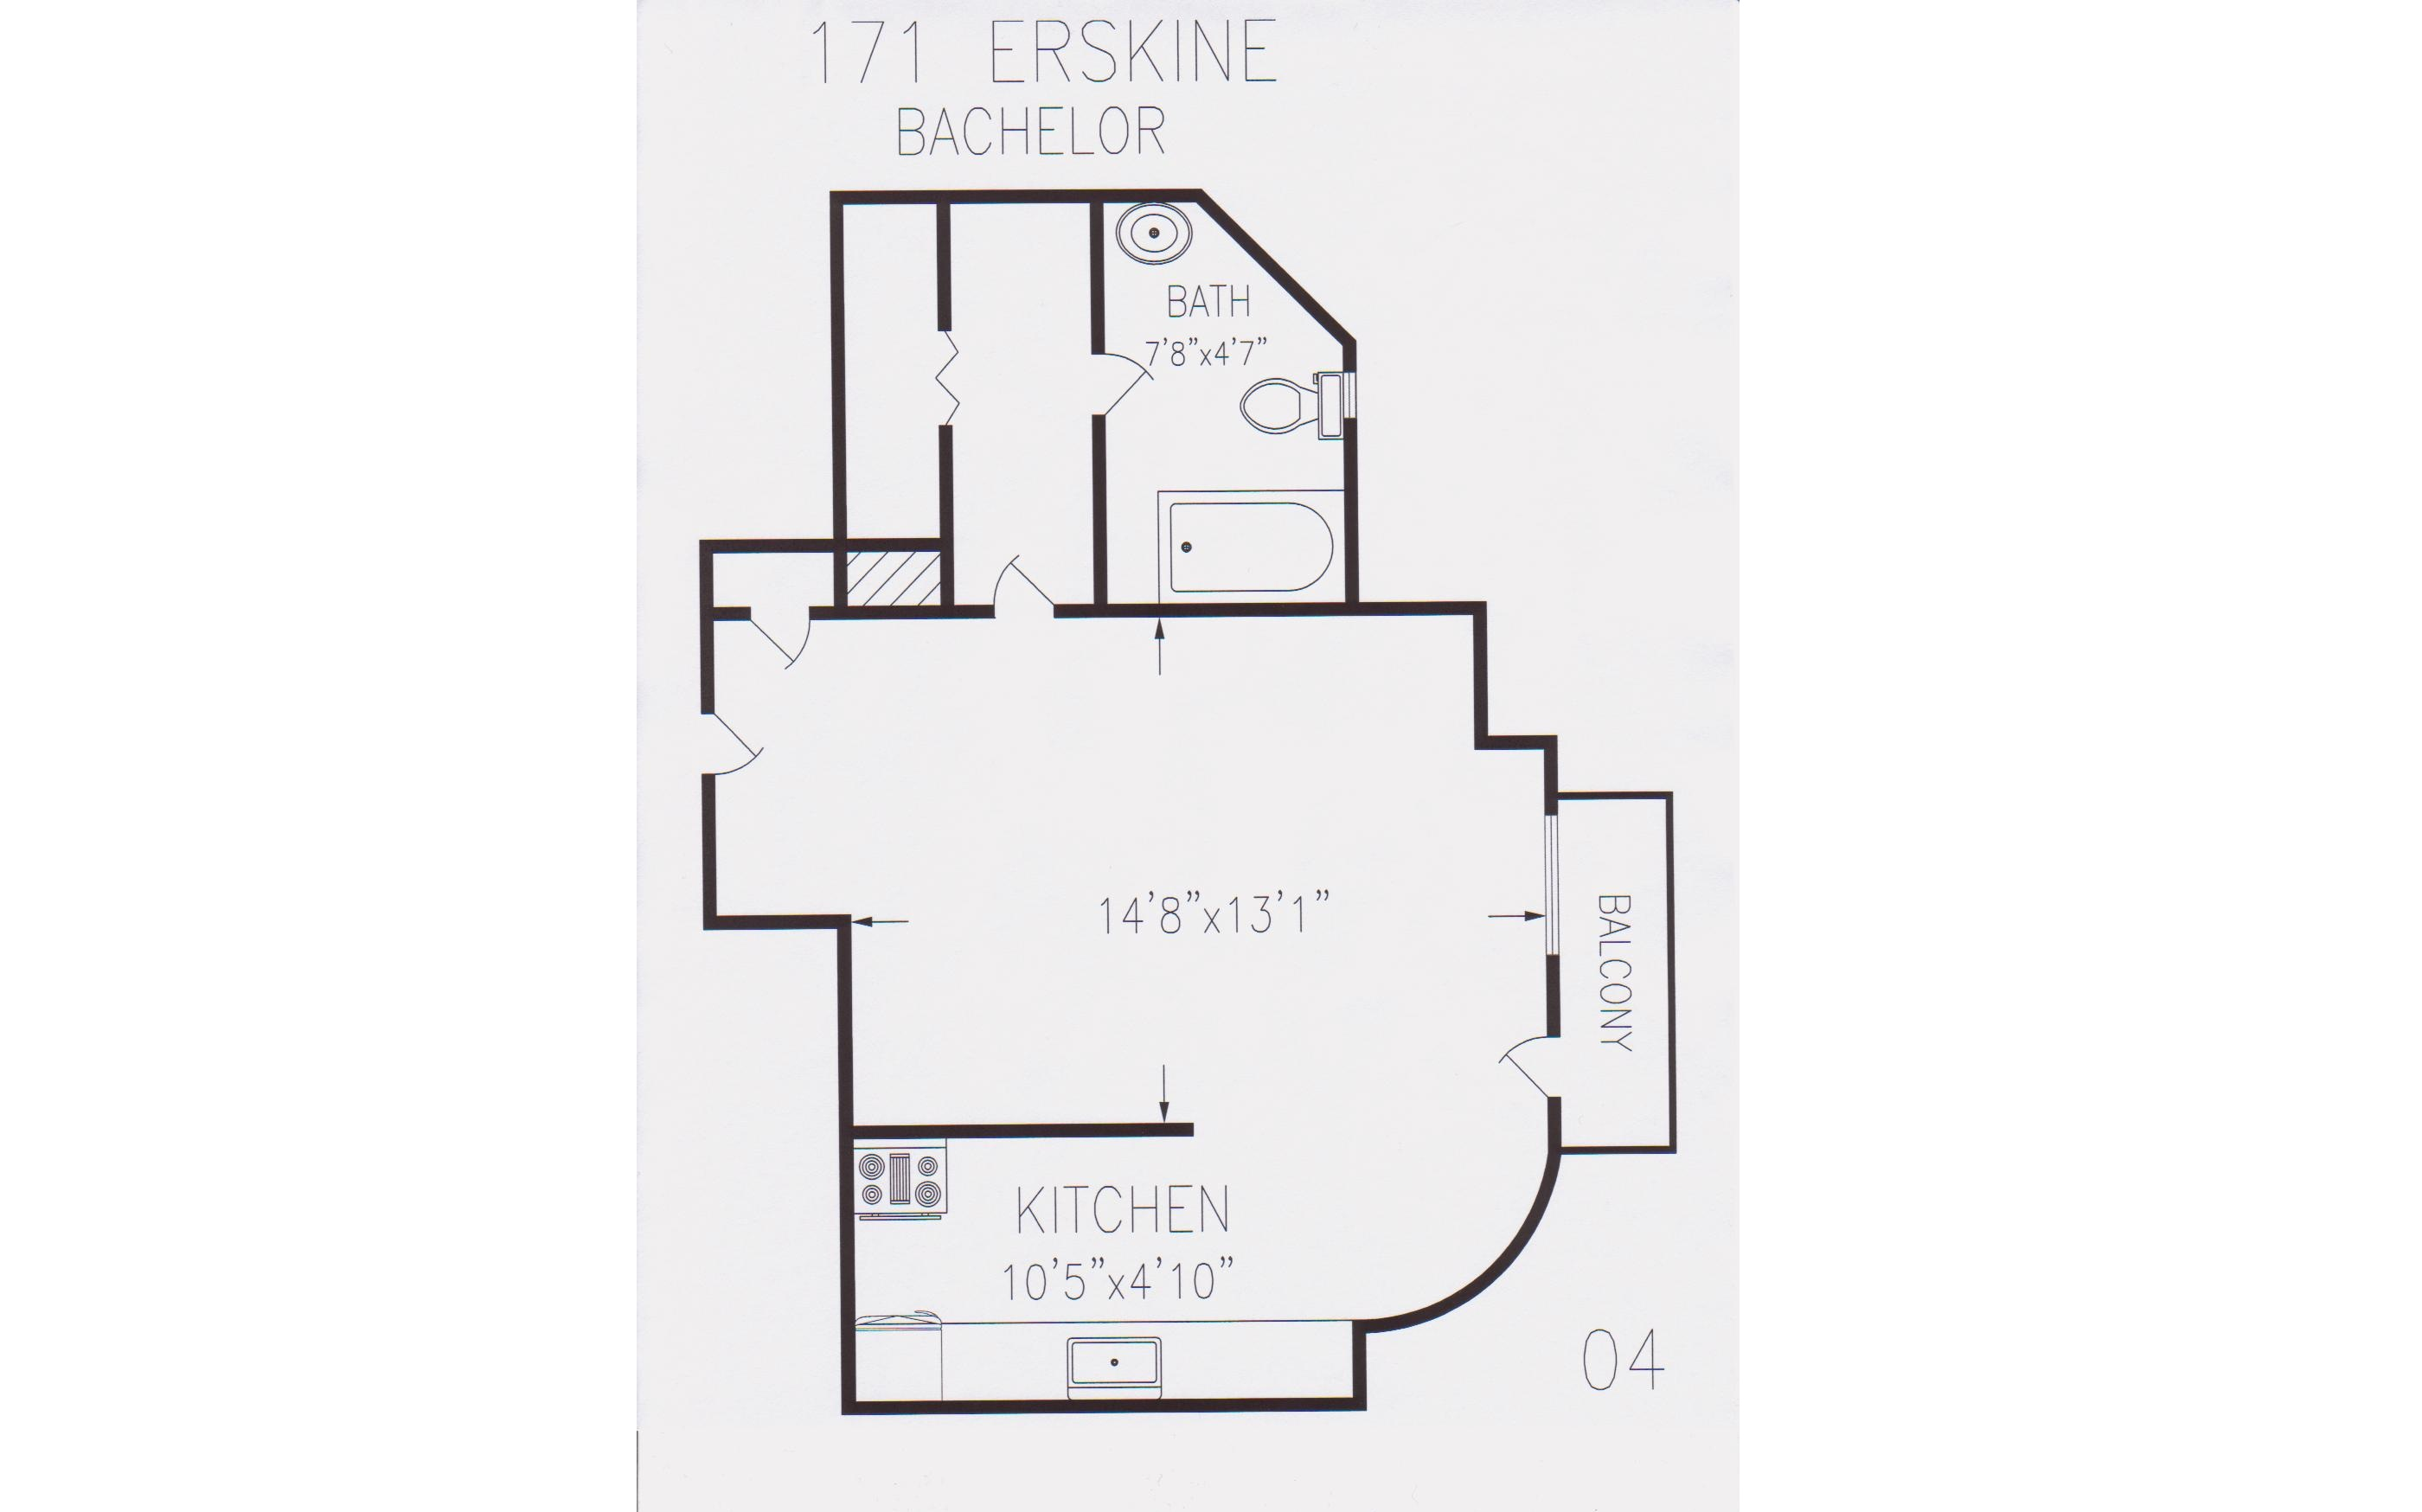 171 erskine avenue berkley property management for Bach floor plans